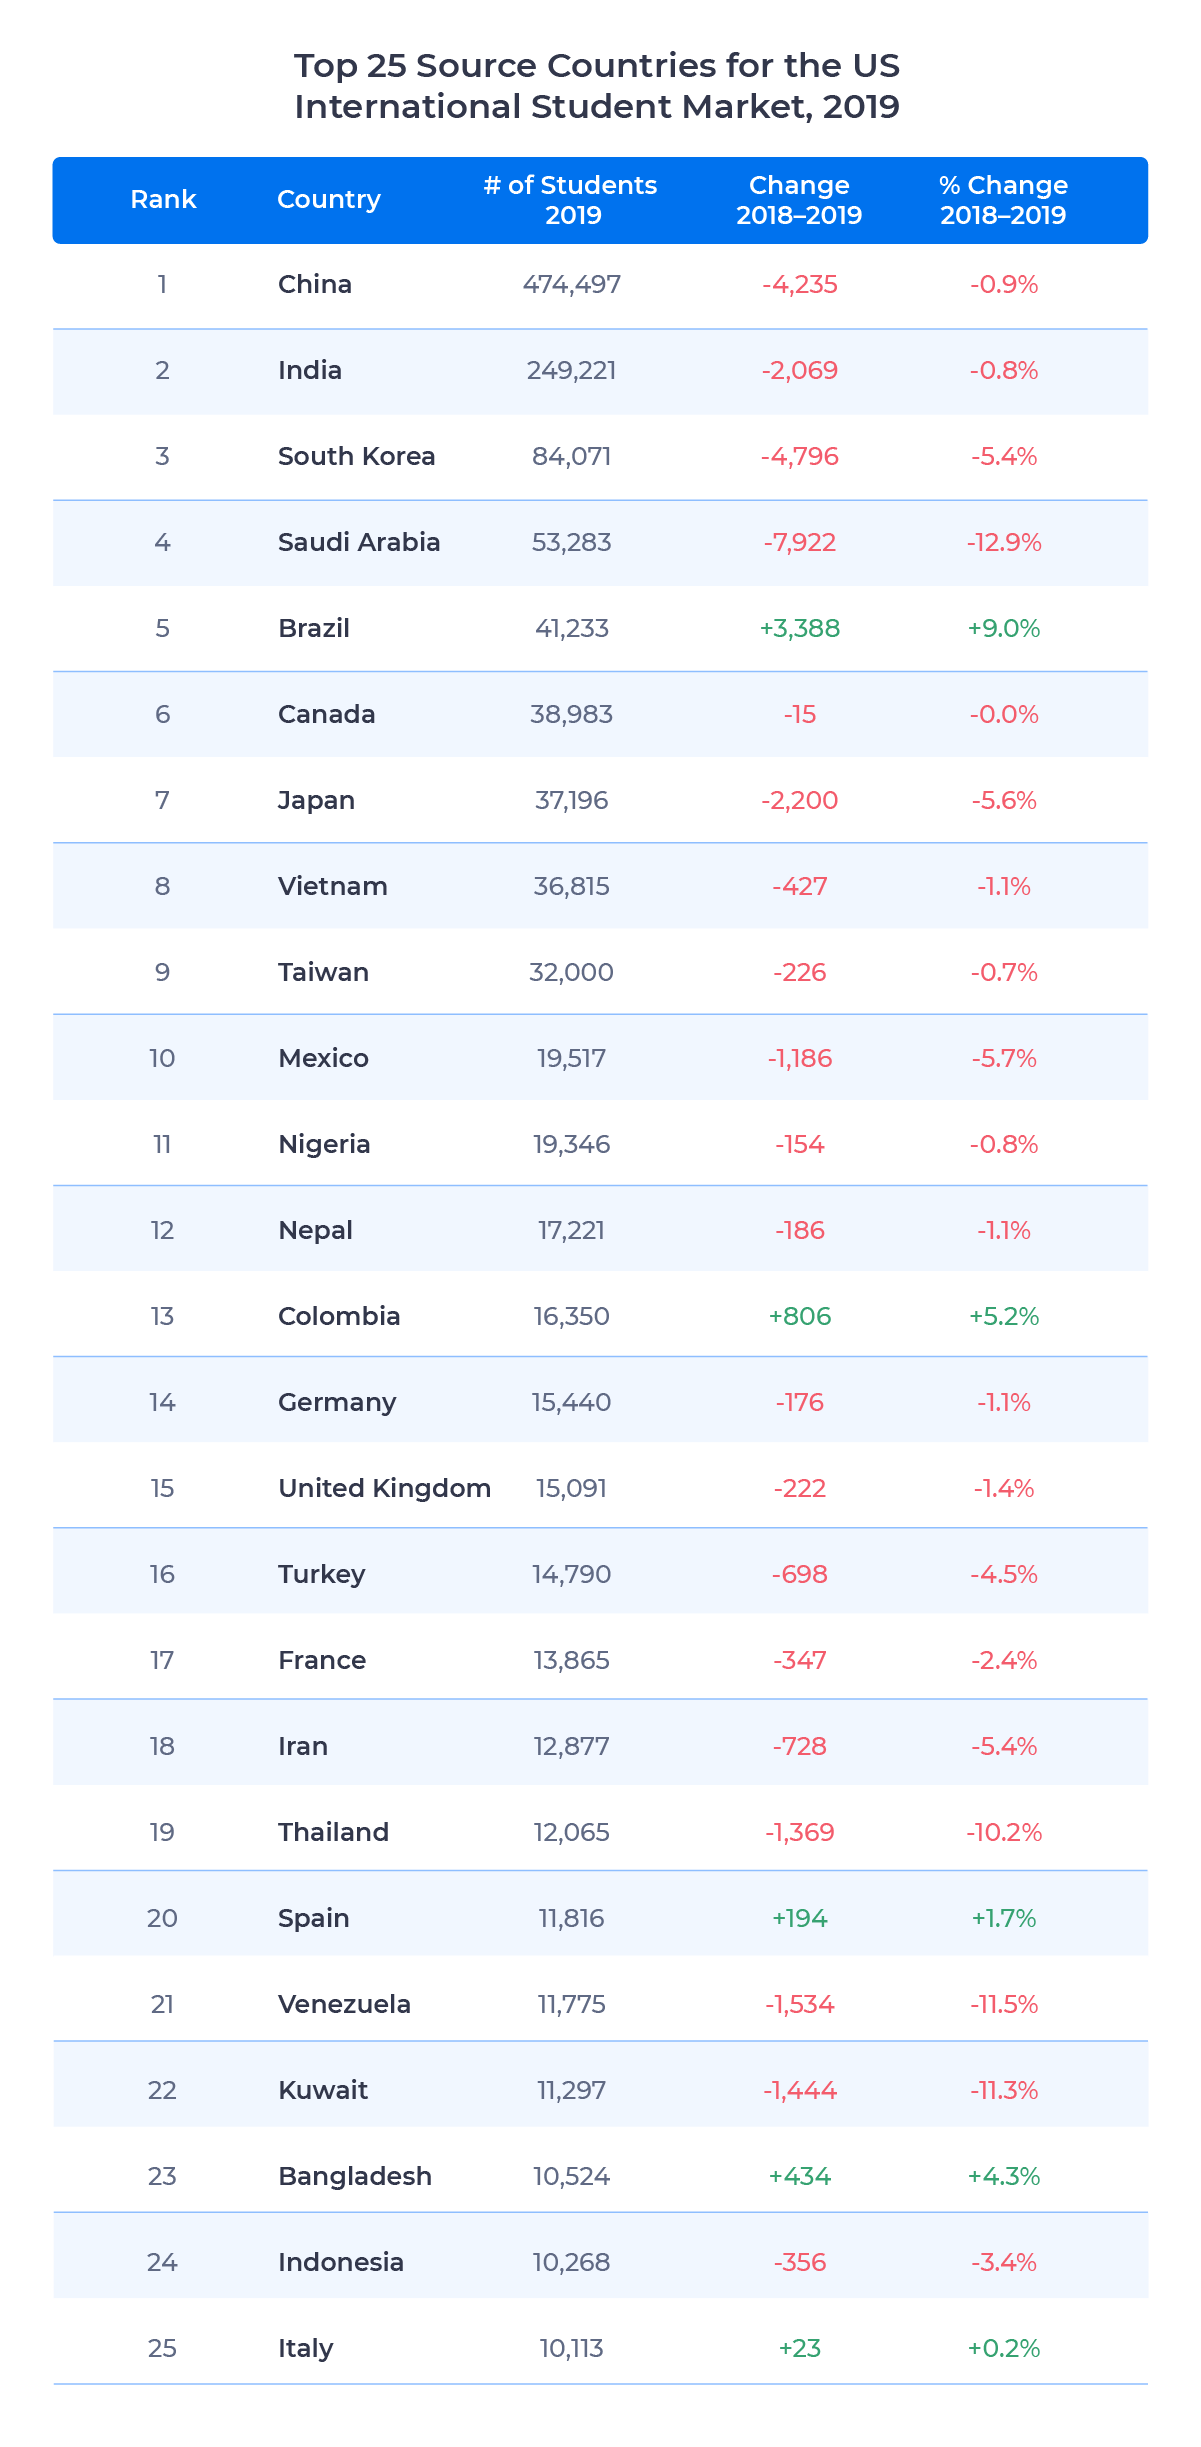 Chart showing the top 25 source countries for the US international student market in 2019, including change in number of students between 2018 and 2019.